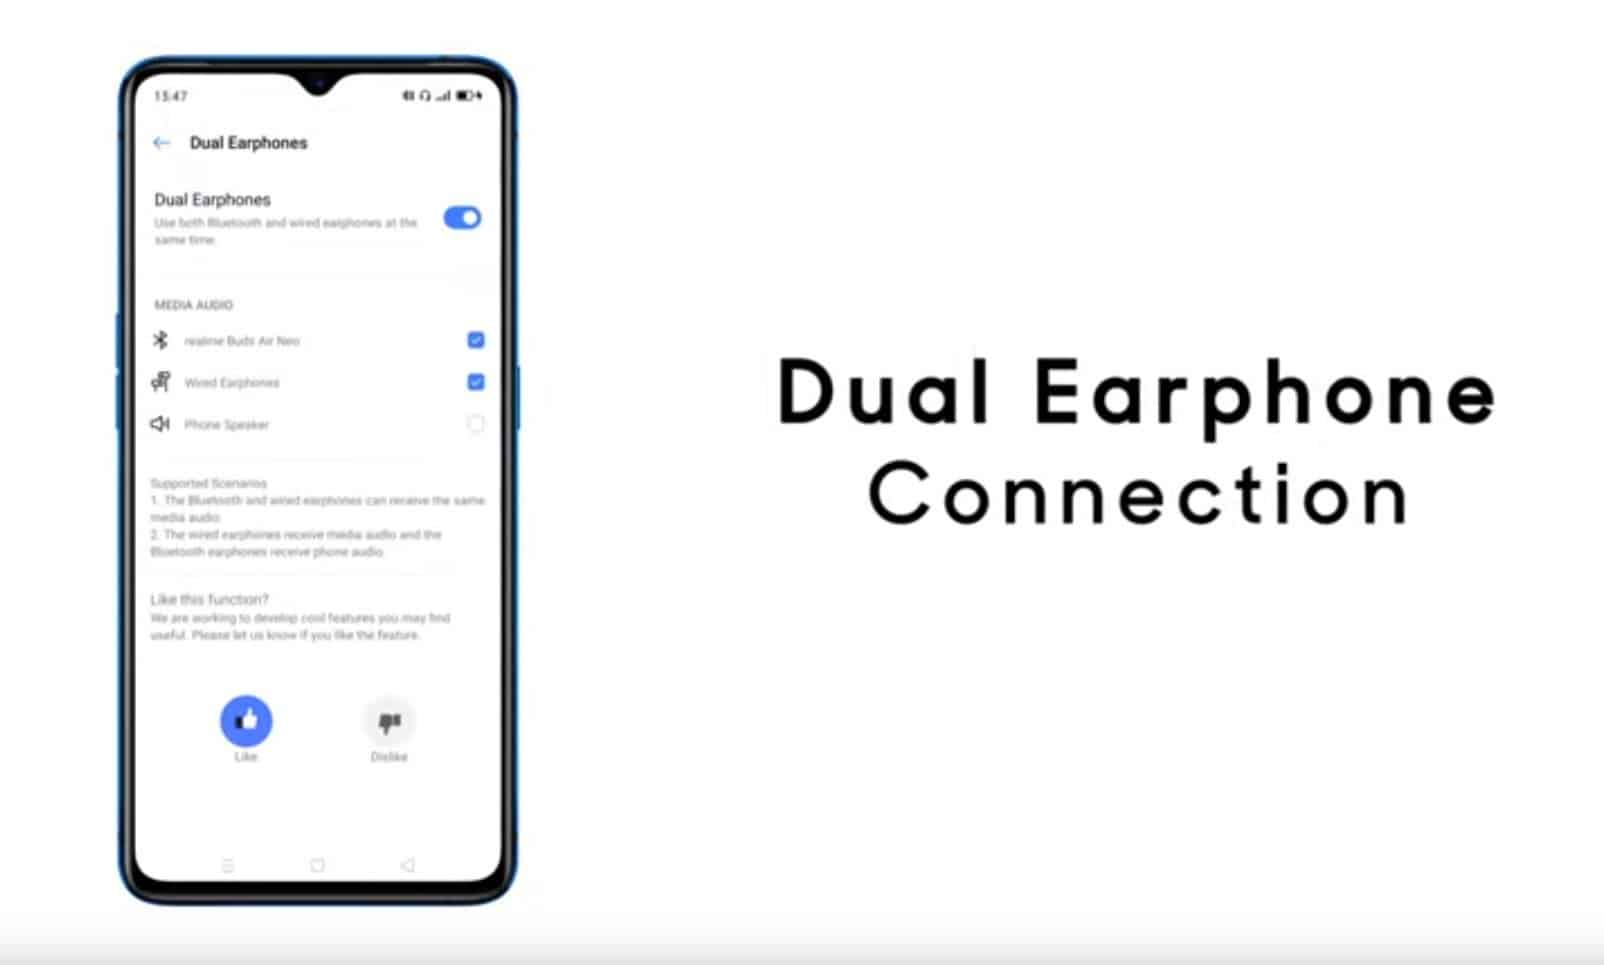 Realme Buds Air Neo teased during Realme UI's reveal